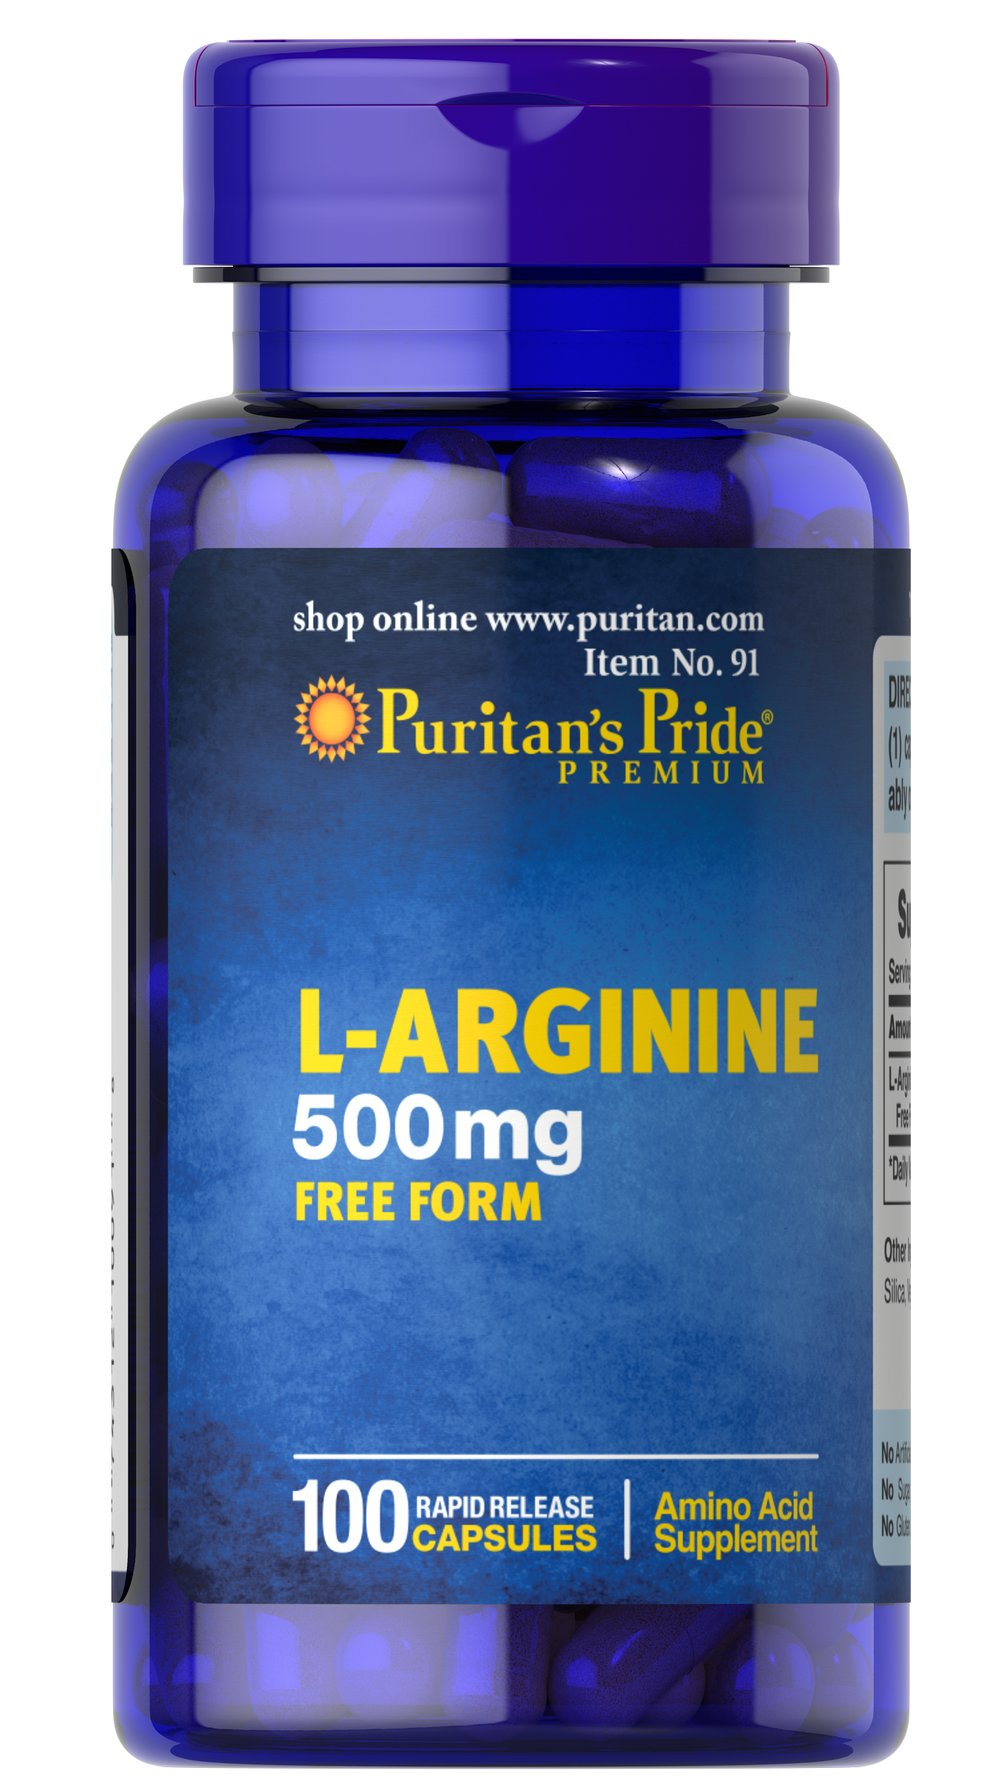 L-Arginine 500 mg <p>Arginine is one of 20 amino acids, the building blocks of protein.** Arginine can  serve as a source of energy, and is involved in various pathways throughout the body.** Arginine supports the effect of exercise and is one of the most important amino acids involved in immune function.** Adults can take one caplet daily. </p> 100 Capsules 500 mg $14.99